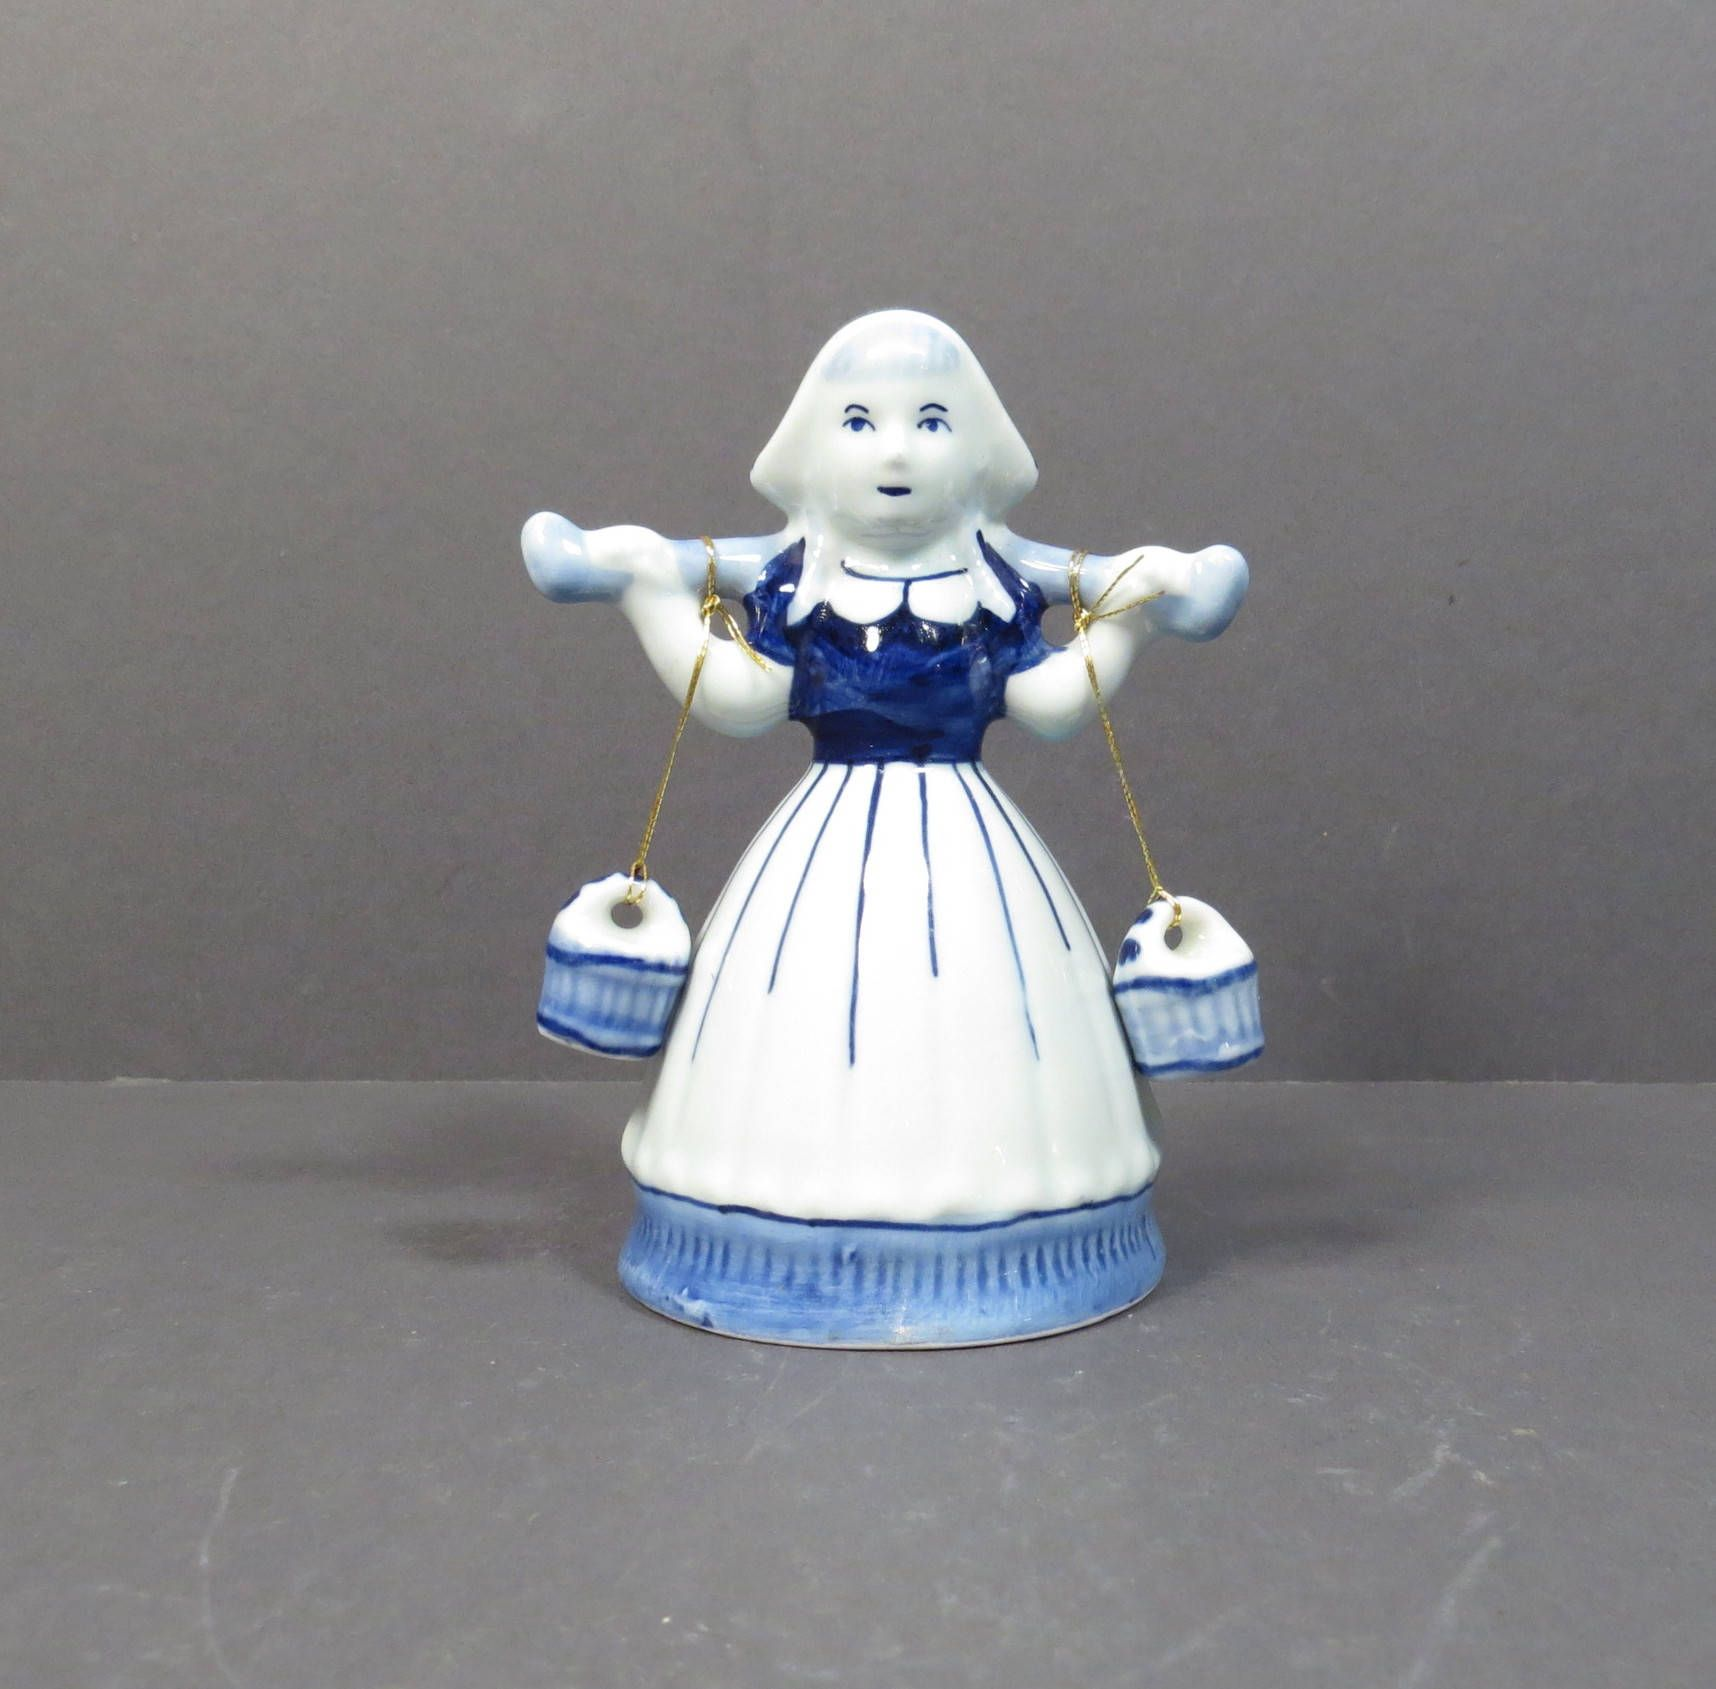 Latest Collection Of Delft Blue Dutch Milk Maid Hand Painted Beautiful And Charming Pottery & China